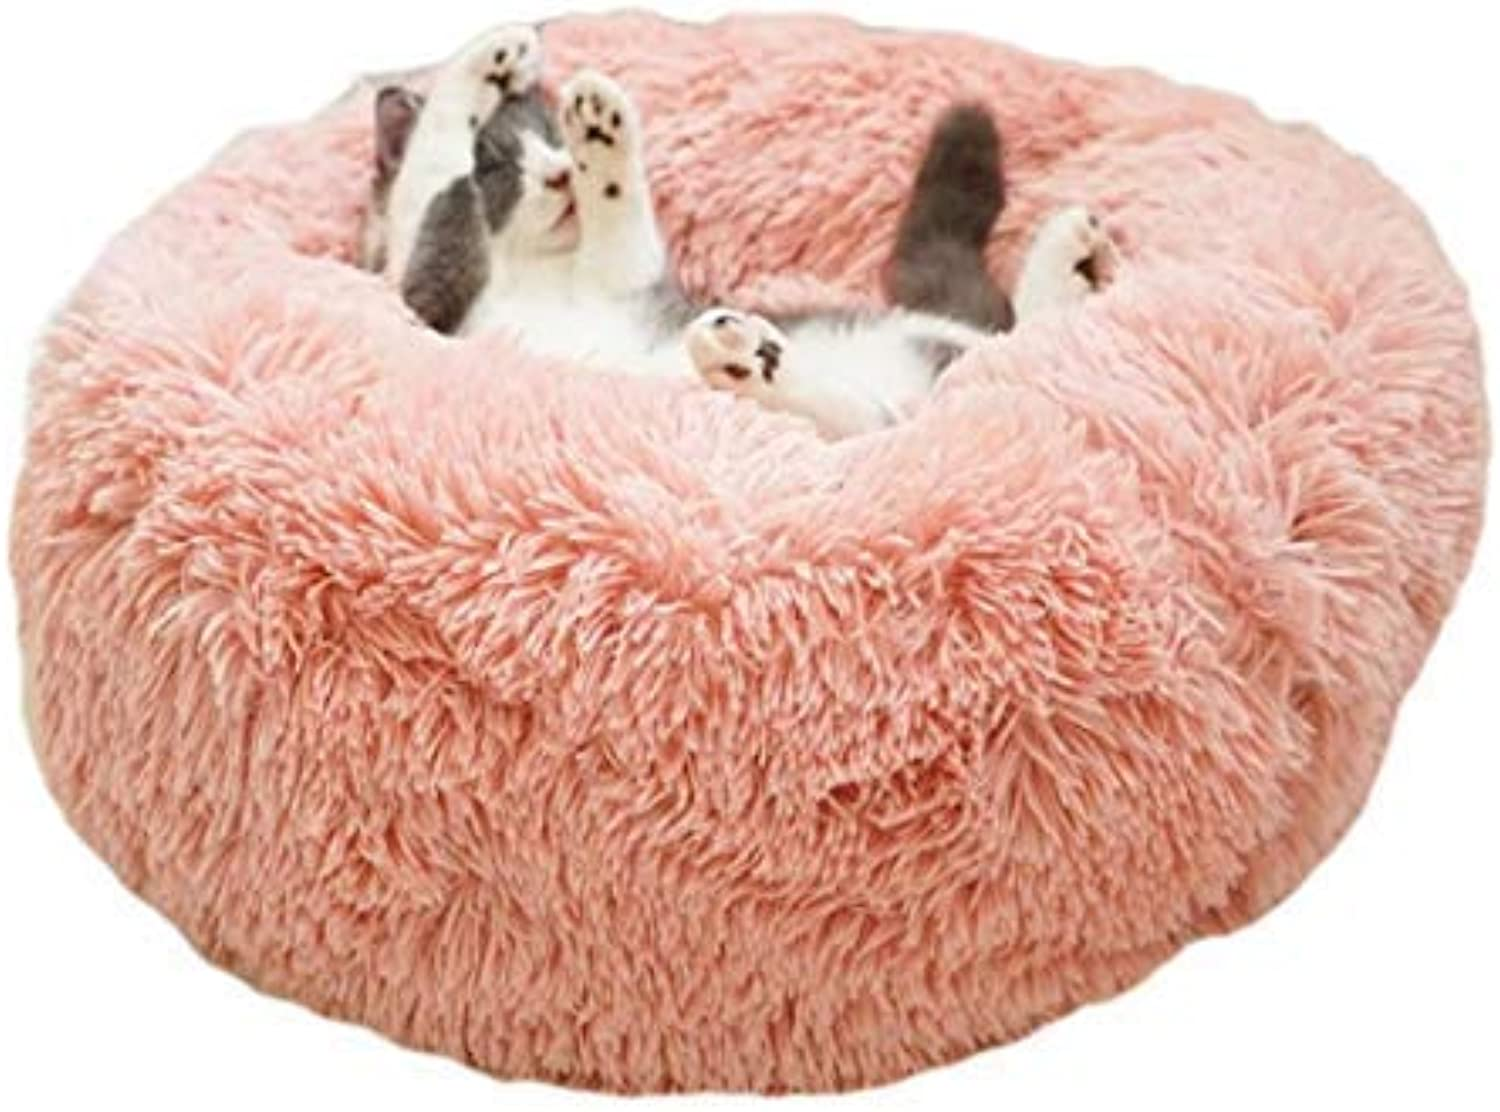 ALLNEO Luxury Shag Fuax Fur Donut Cuddler Round Donut Pet Bed Faux Fur Dog Beds for Medium Small Dogs  Self Warming Indoor Round Pillow Cuddler